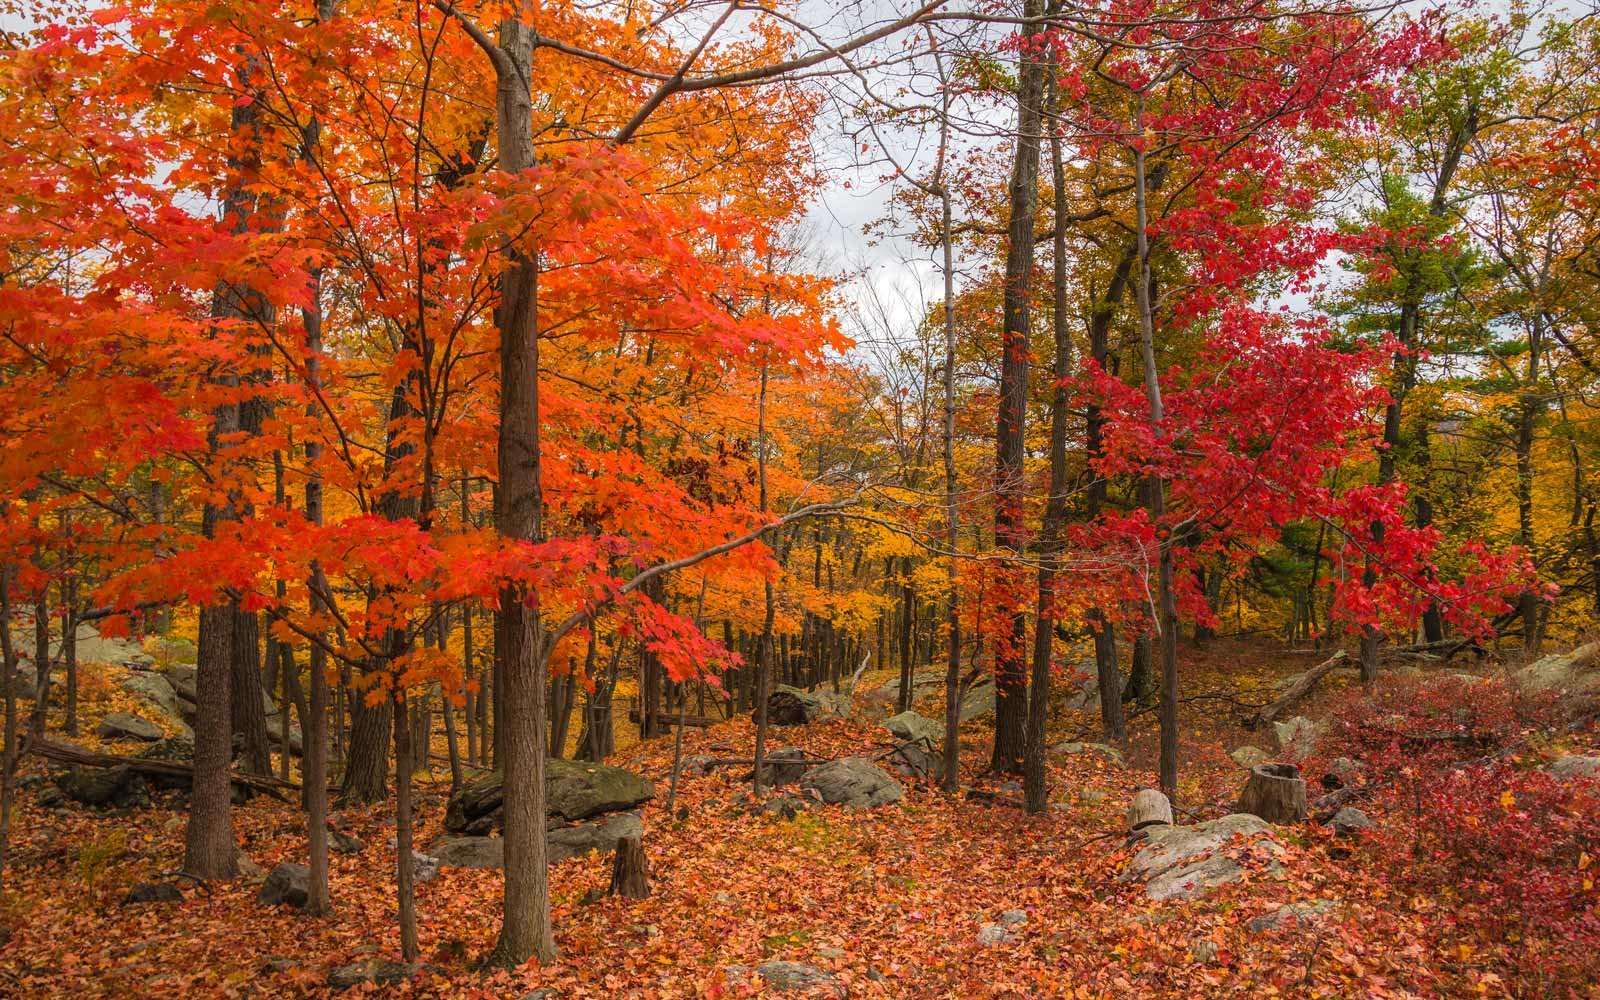 Photograph of fall foliage taken in Bear Mountain, Hudson Valley, New York